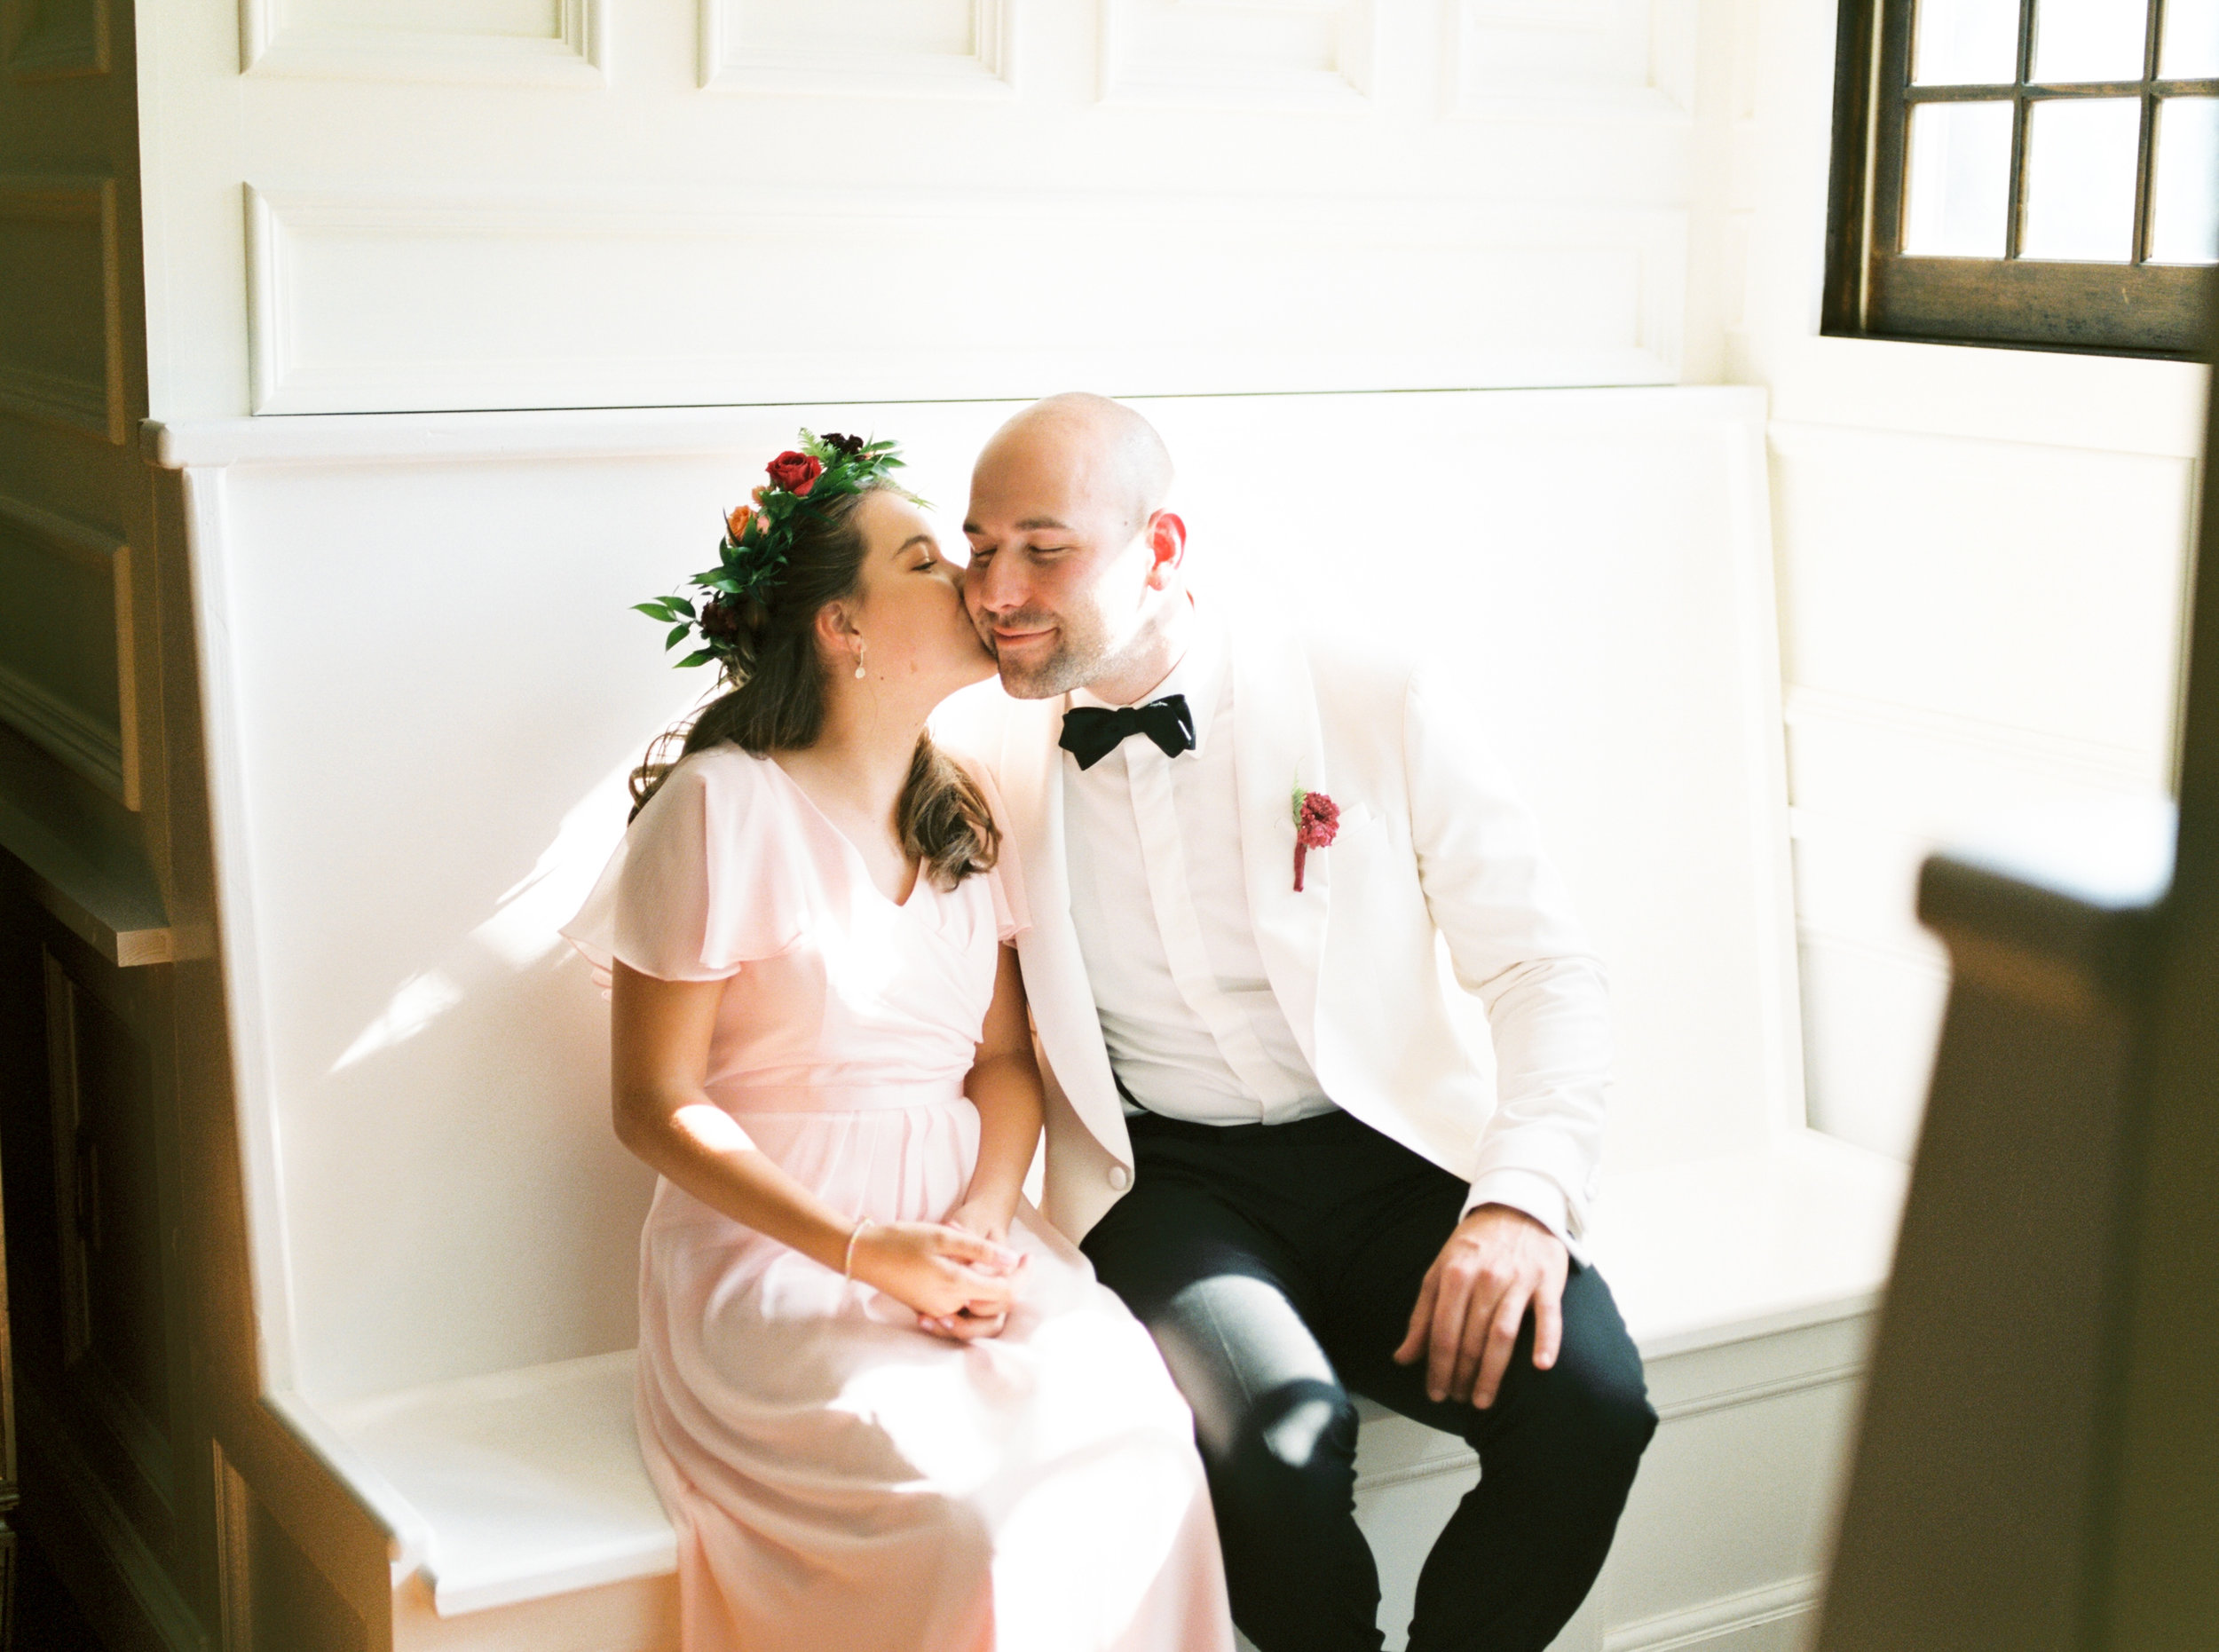 James got ready with his daughter in the sun-filled bridal suite for his modern summer wedding at Hotel du Village.